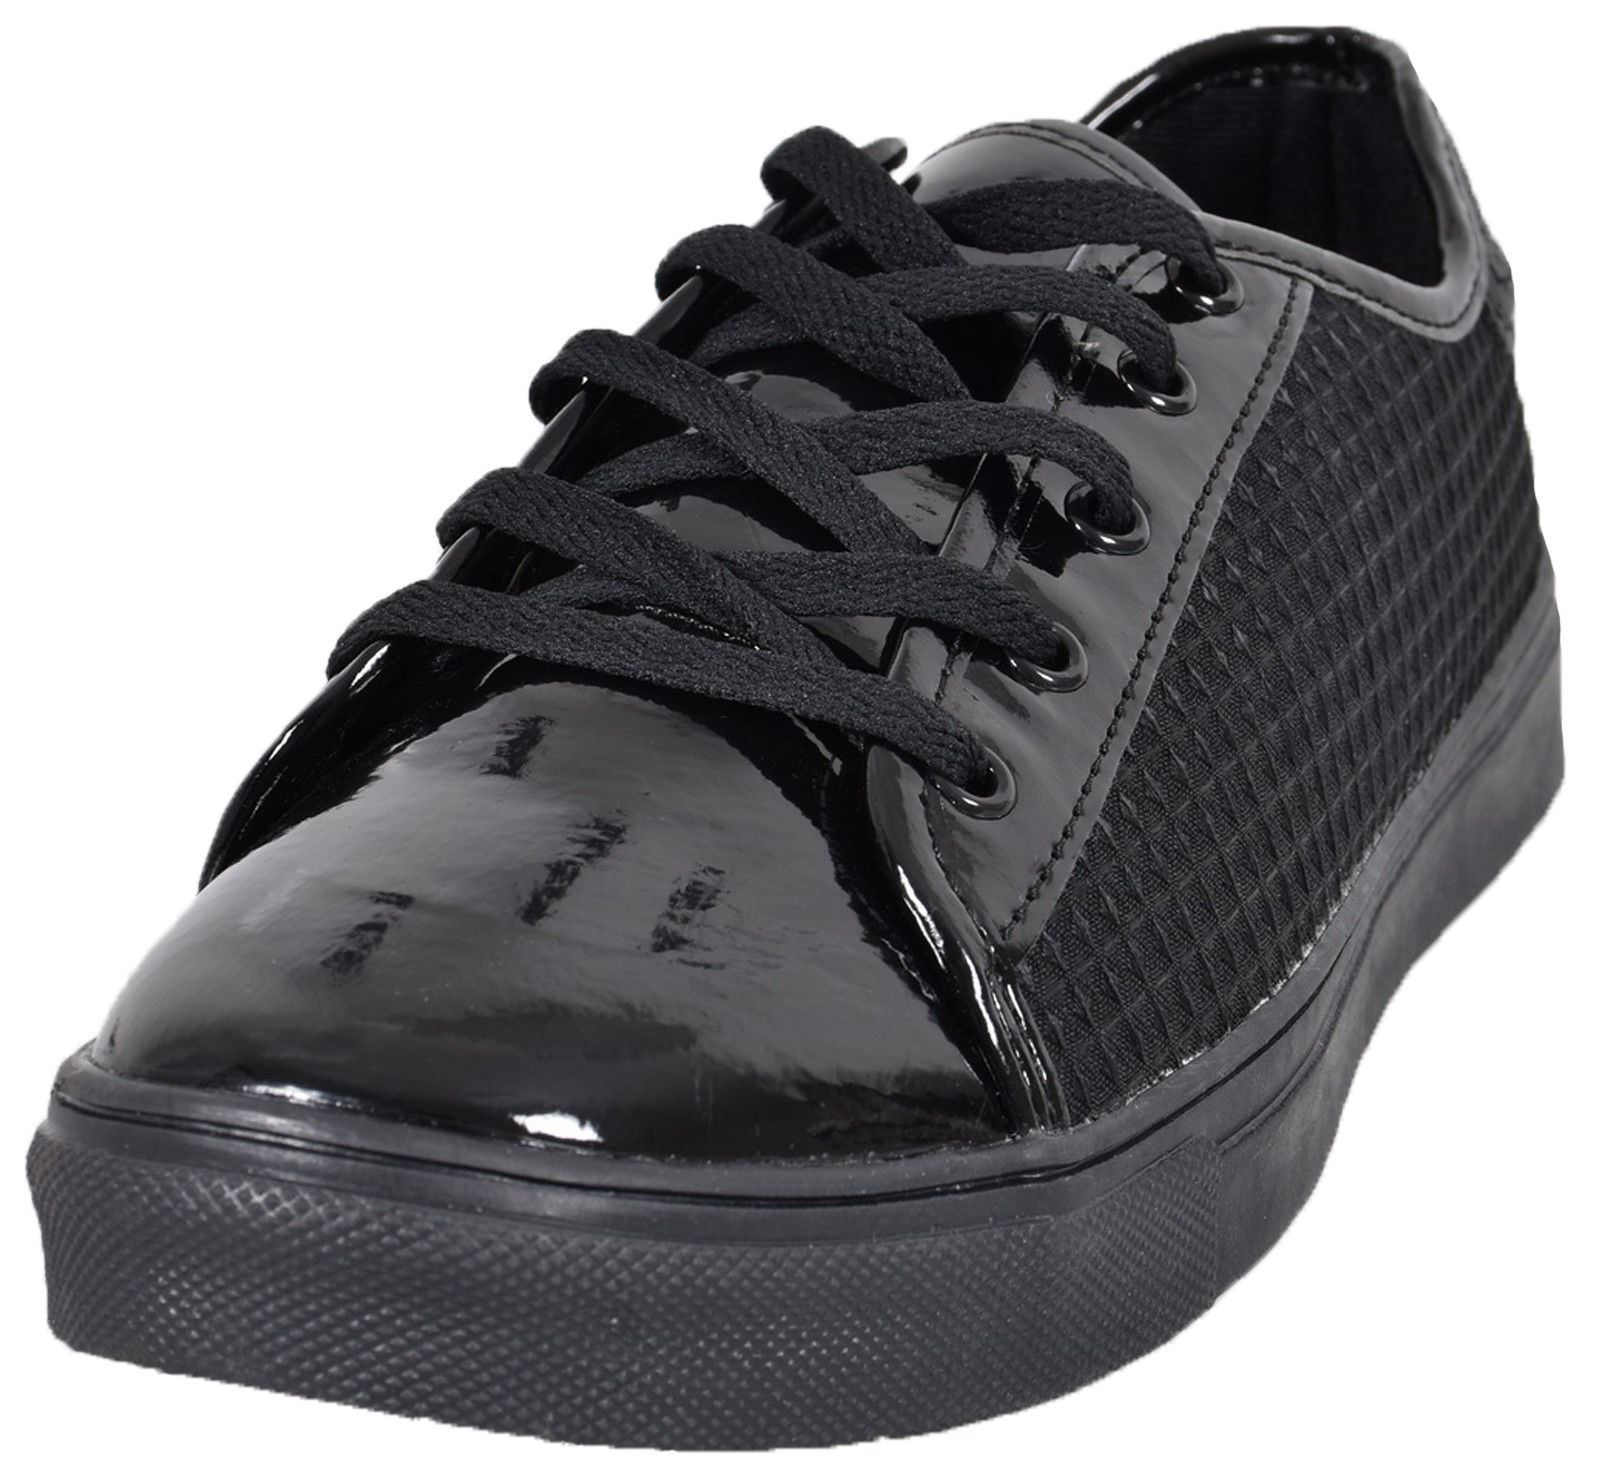 Loyalty-amp-Faith-Mens-Trainers-Sneakers-Lace-up-Running-Walking-Gym-Casual-Shoes miniatuur 115